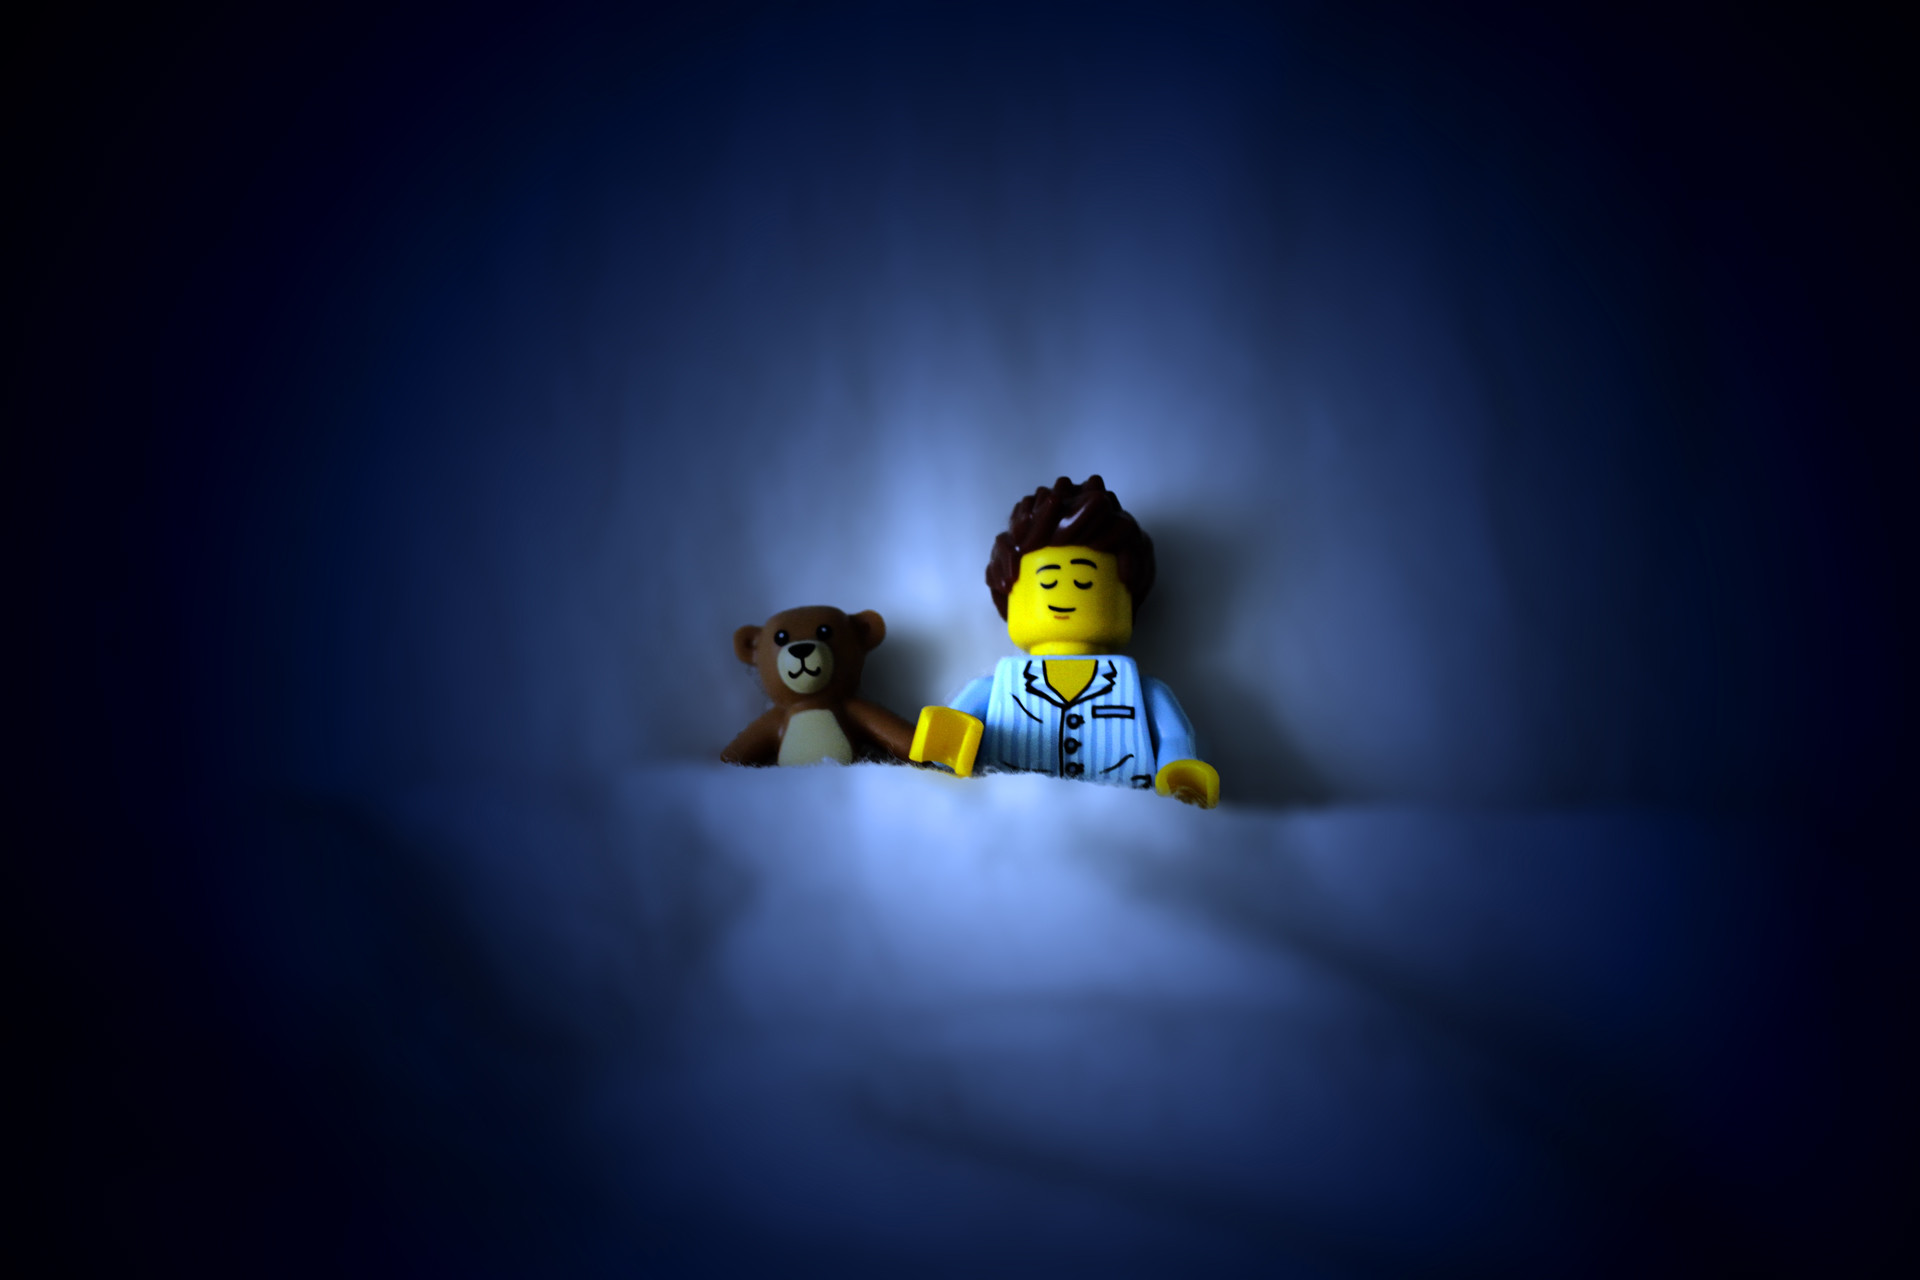 1920x1280 Lego Wallpaper 6542